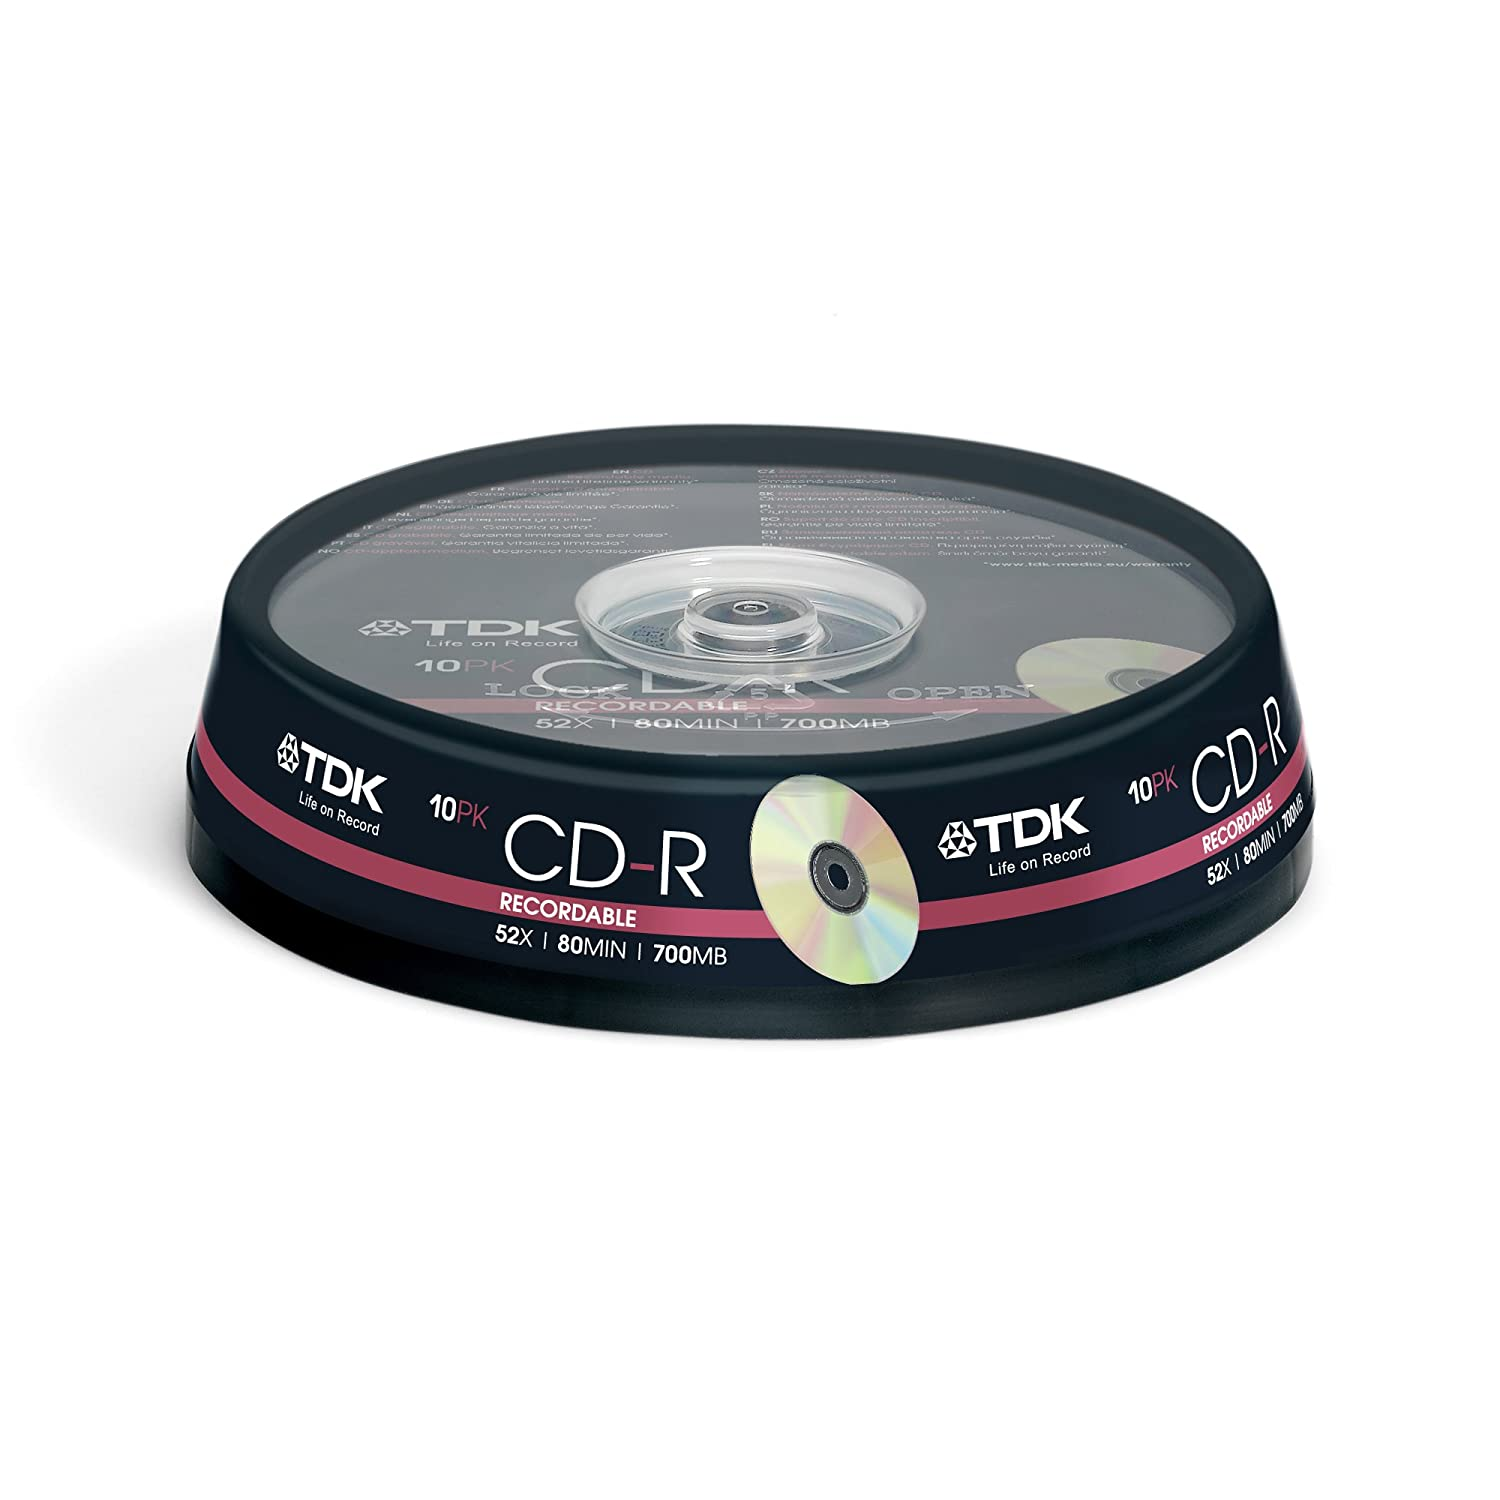 TDK CD-R80CBA10-B CD-R 80min 52x 10 Pack Spindle: Amazon.co.uk